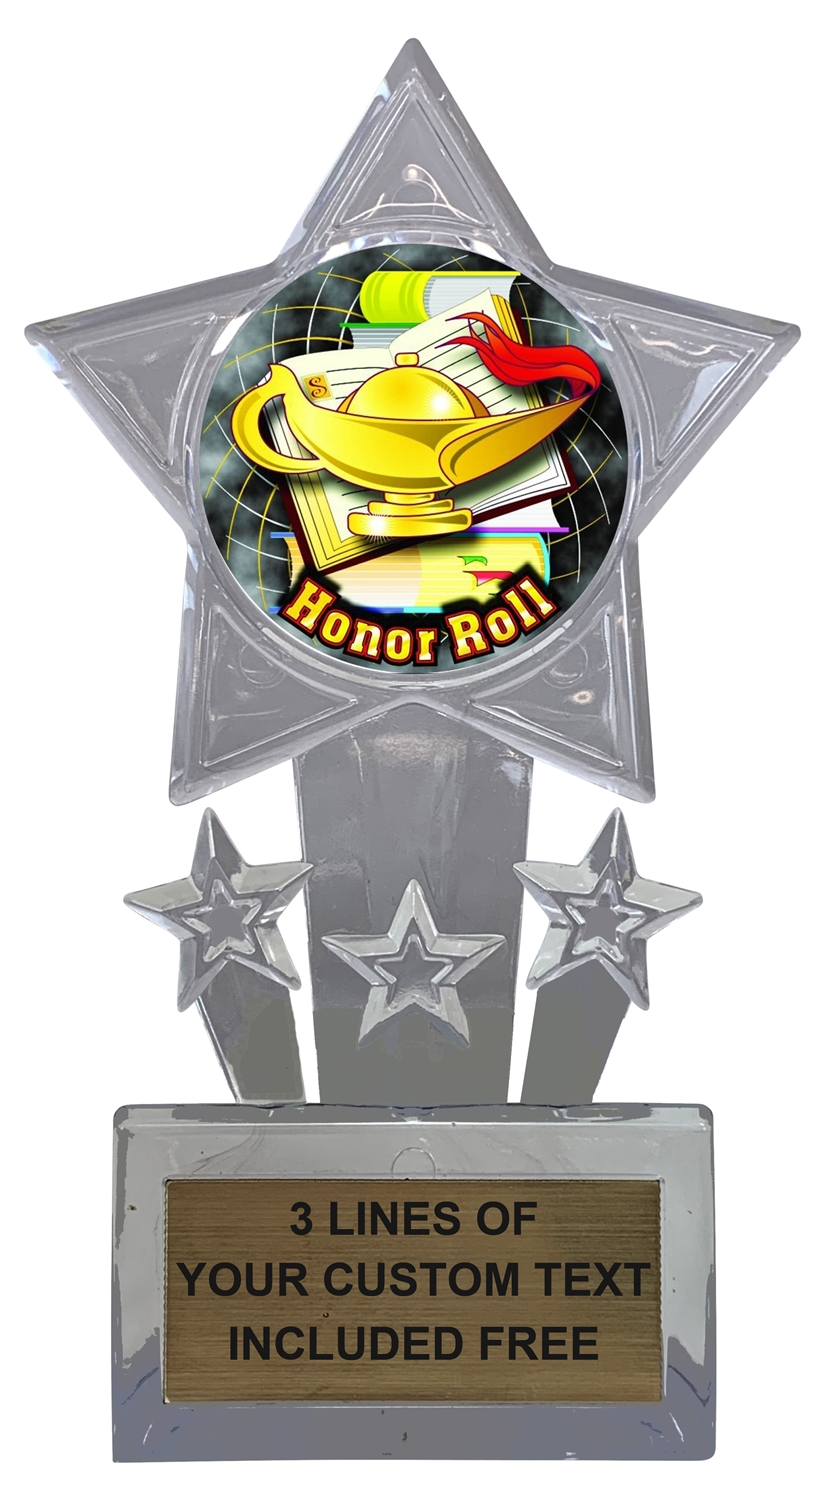 Honor Roll Trophy Cup